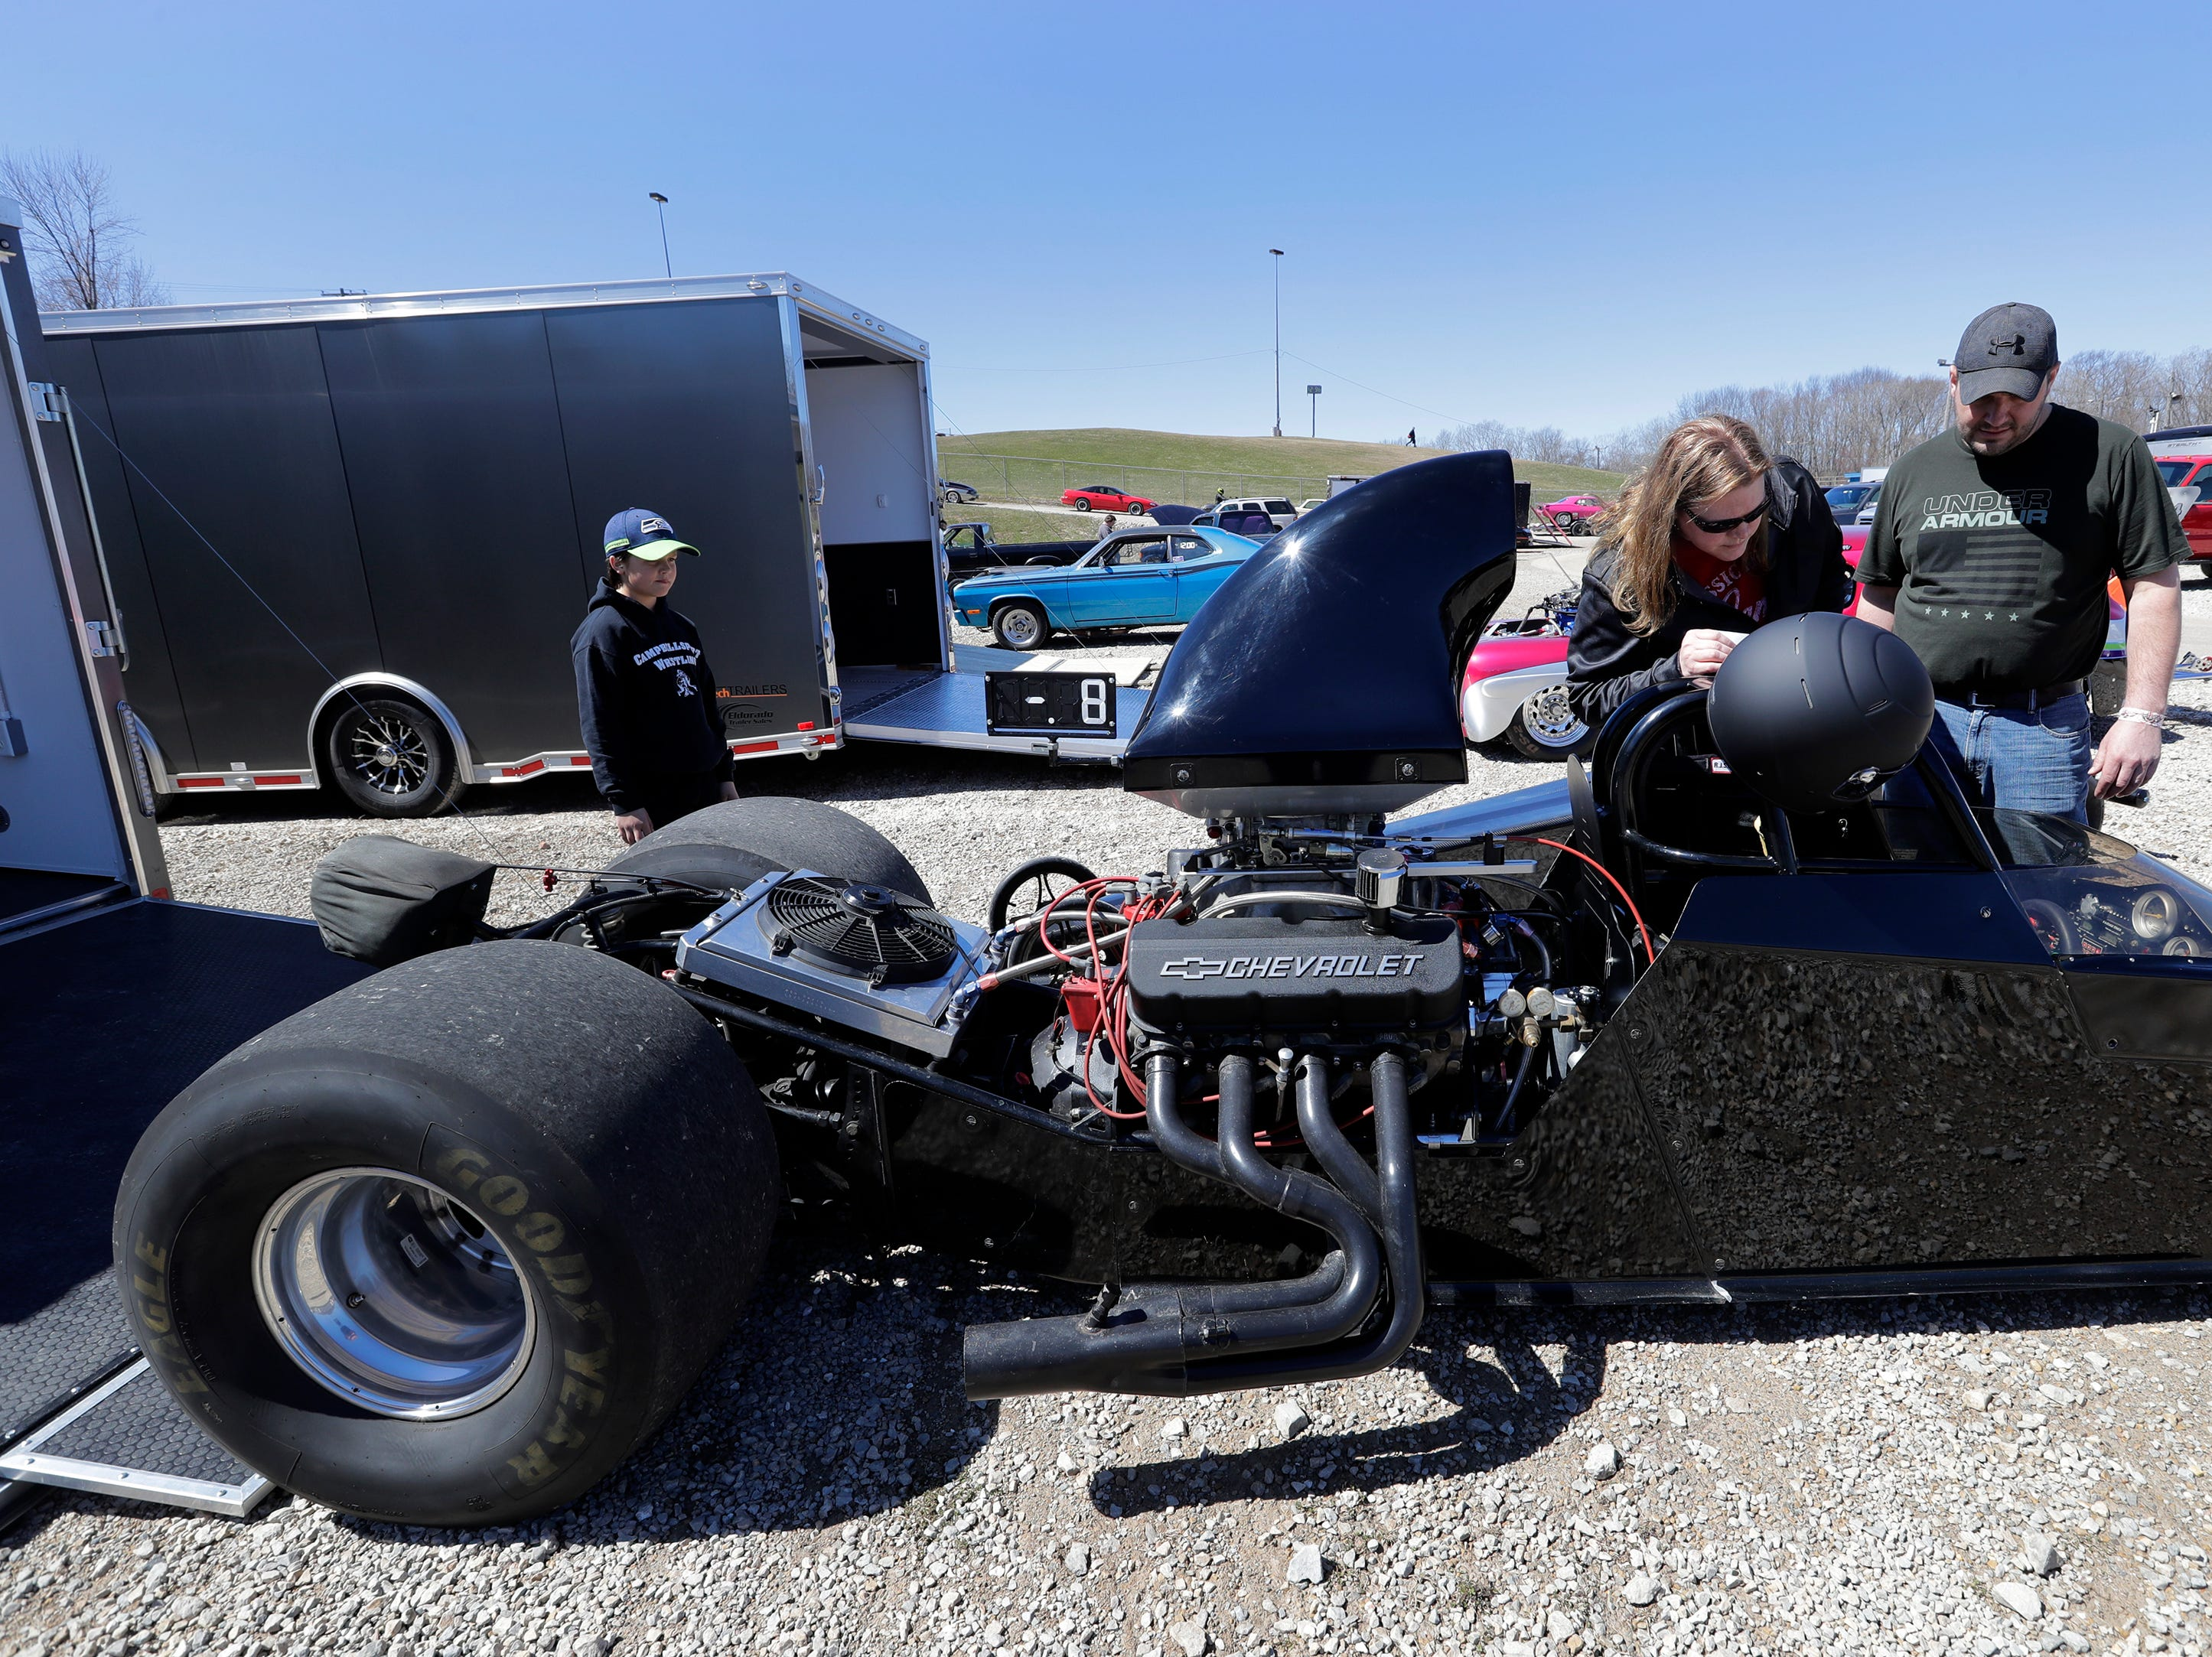 Sarah Bentz of Eden and her husband Keith make adjustments to their rear engine dragster during the Wisconsin International Raceway Strip Test & Tune event Saturday, April 20, 2019, in Kaukauna, Wis. At left is their sun Levi, 9. Drivers spent the day getting safety inspections, tune ups and test runs on the track for the upcoming season.